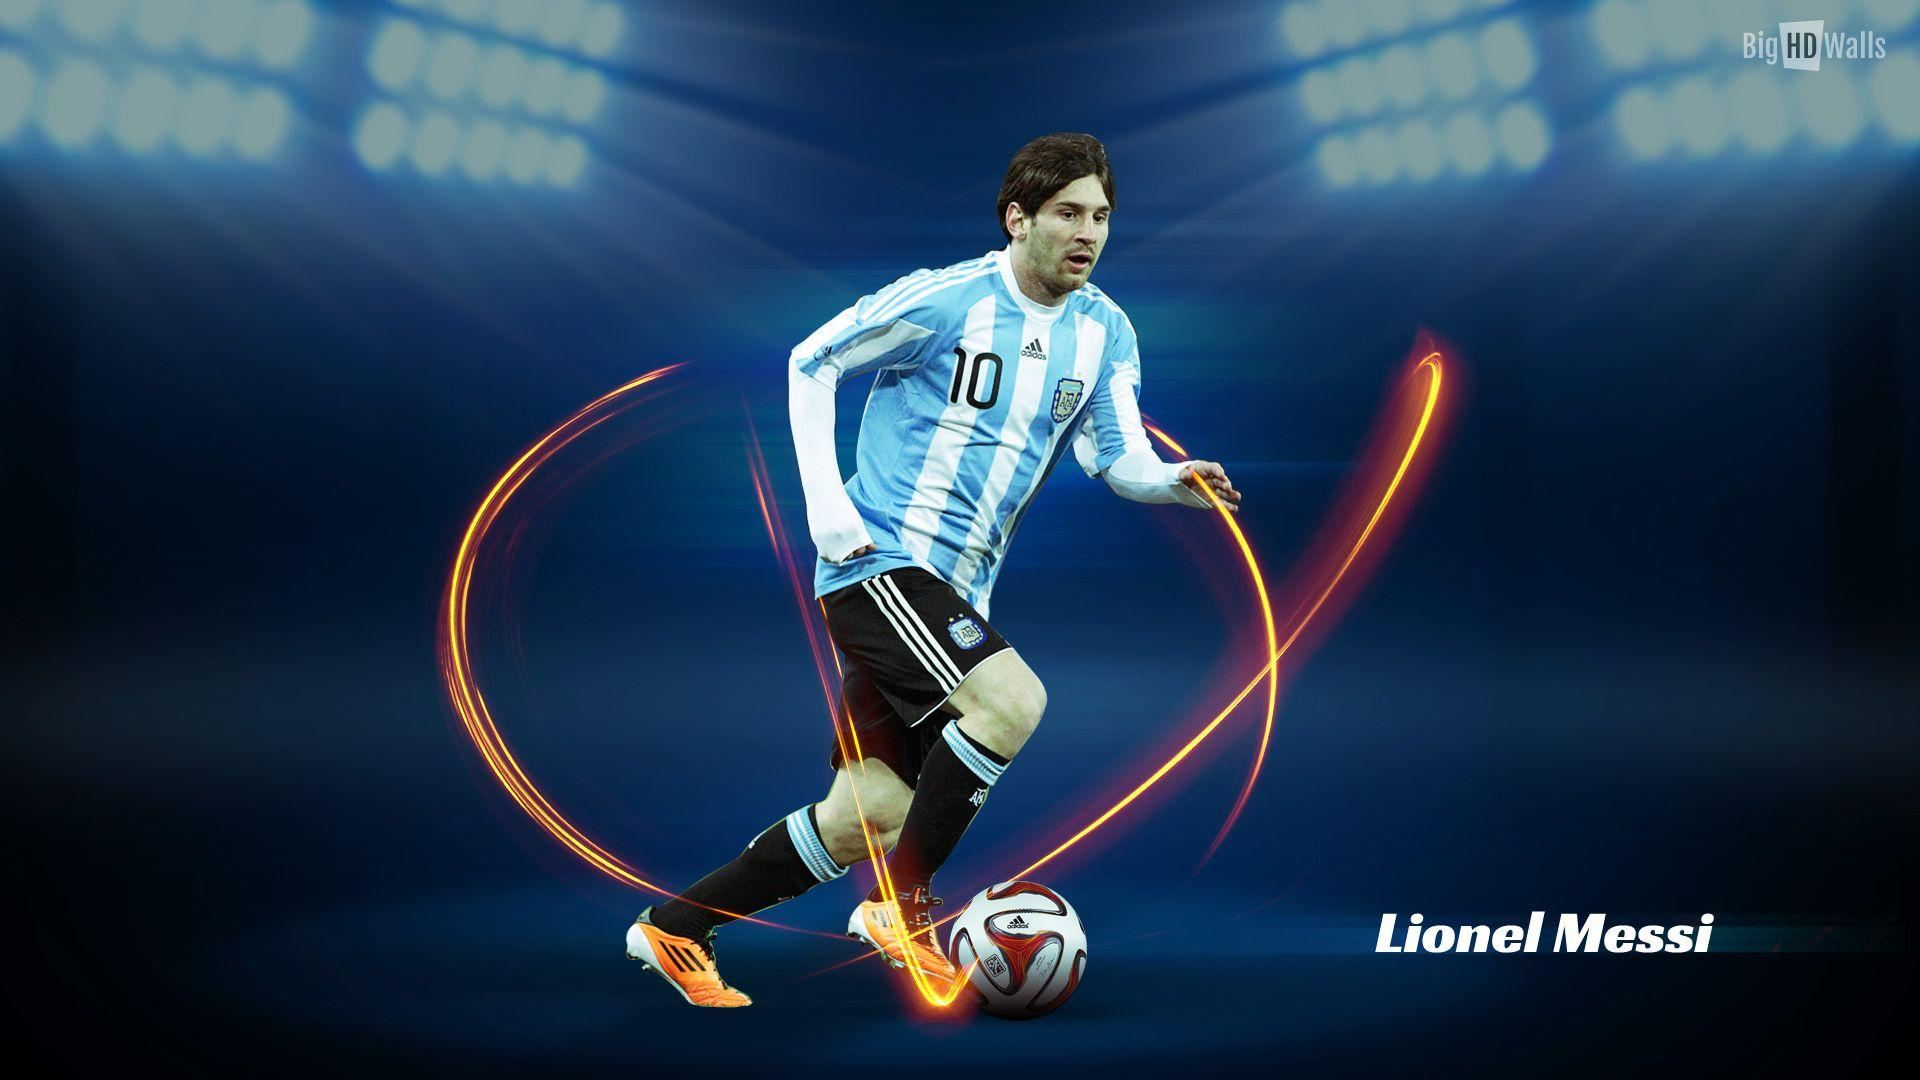 Lionel Messi HD Wallpapers